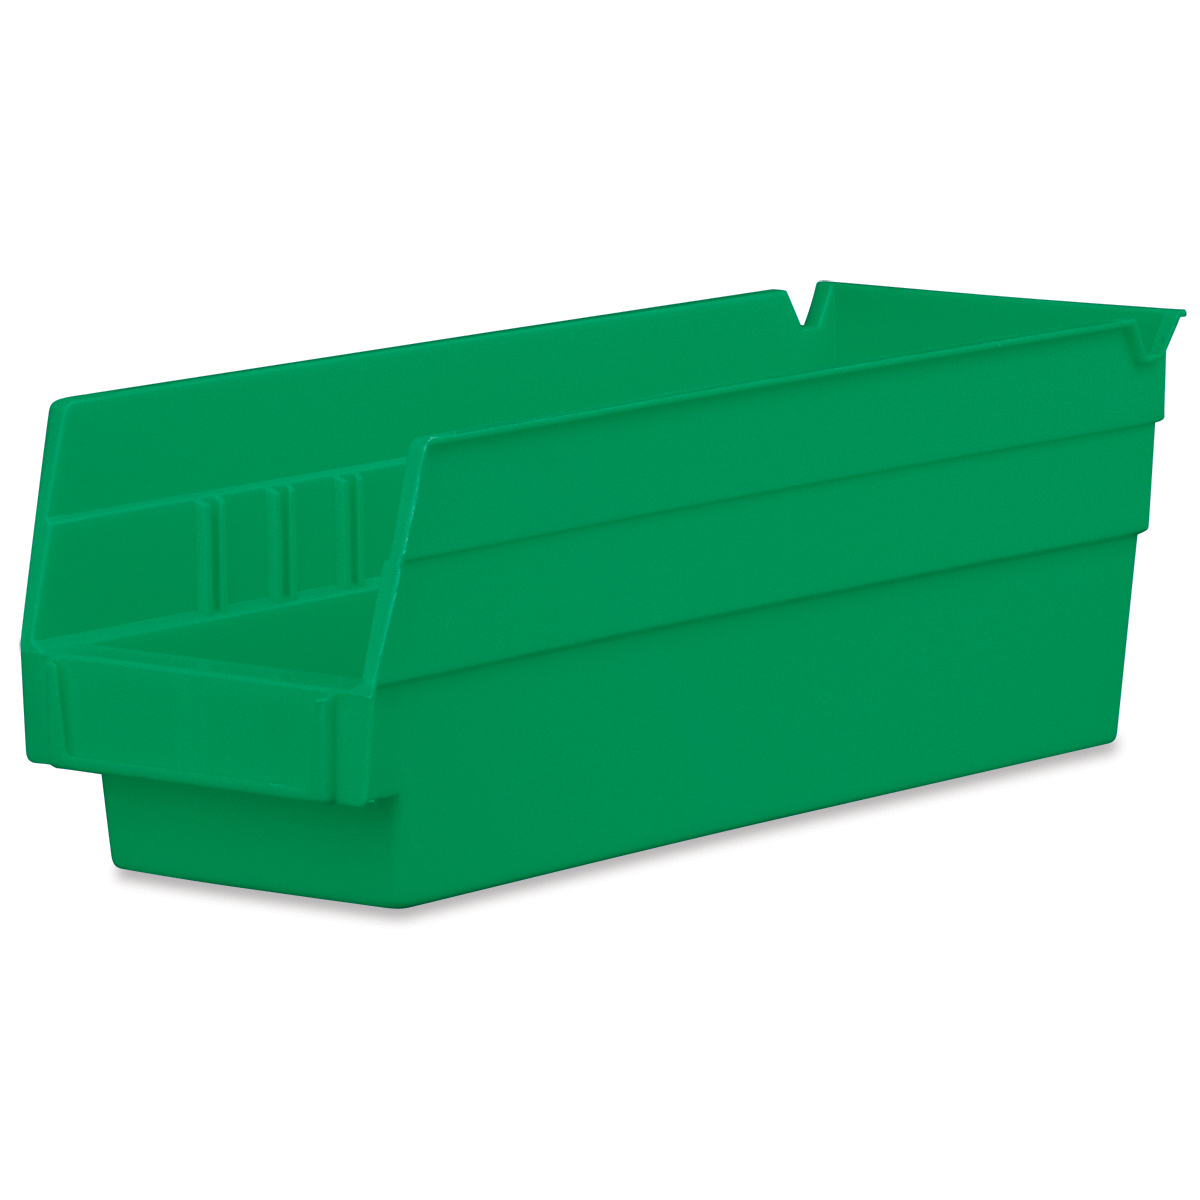 Shelf Bin 11-5/8 x 4-1/8 x 4, Green (30120GREEN).  This item sold in carton quantities of 24.